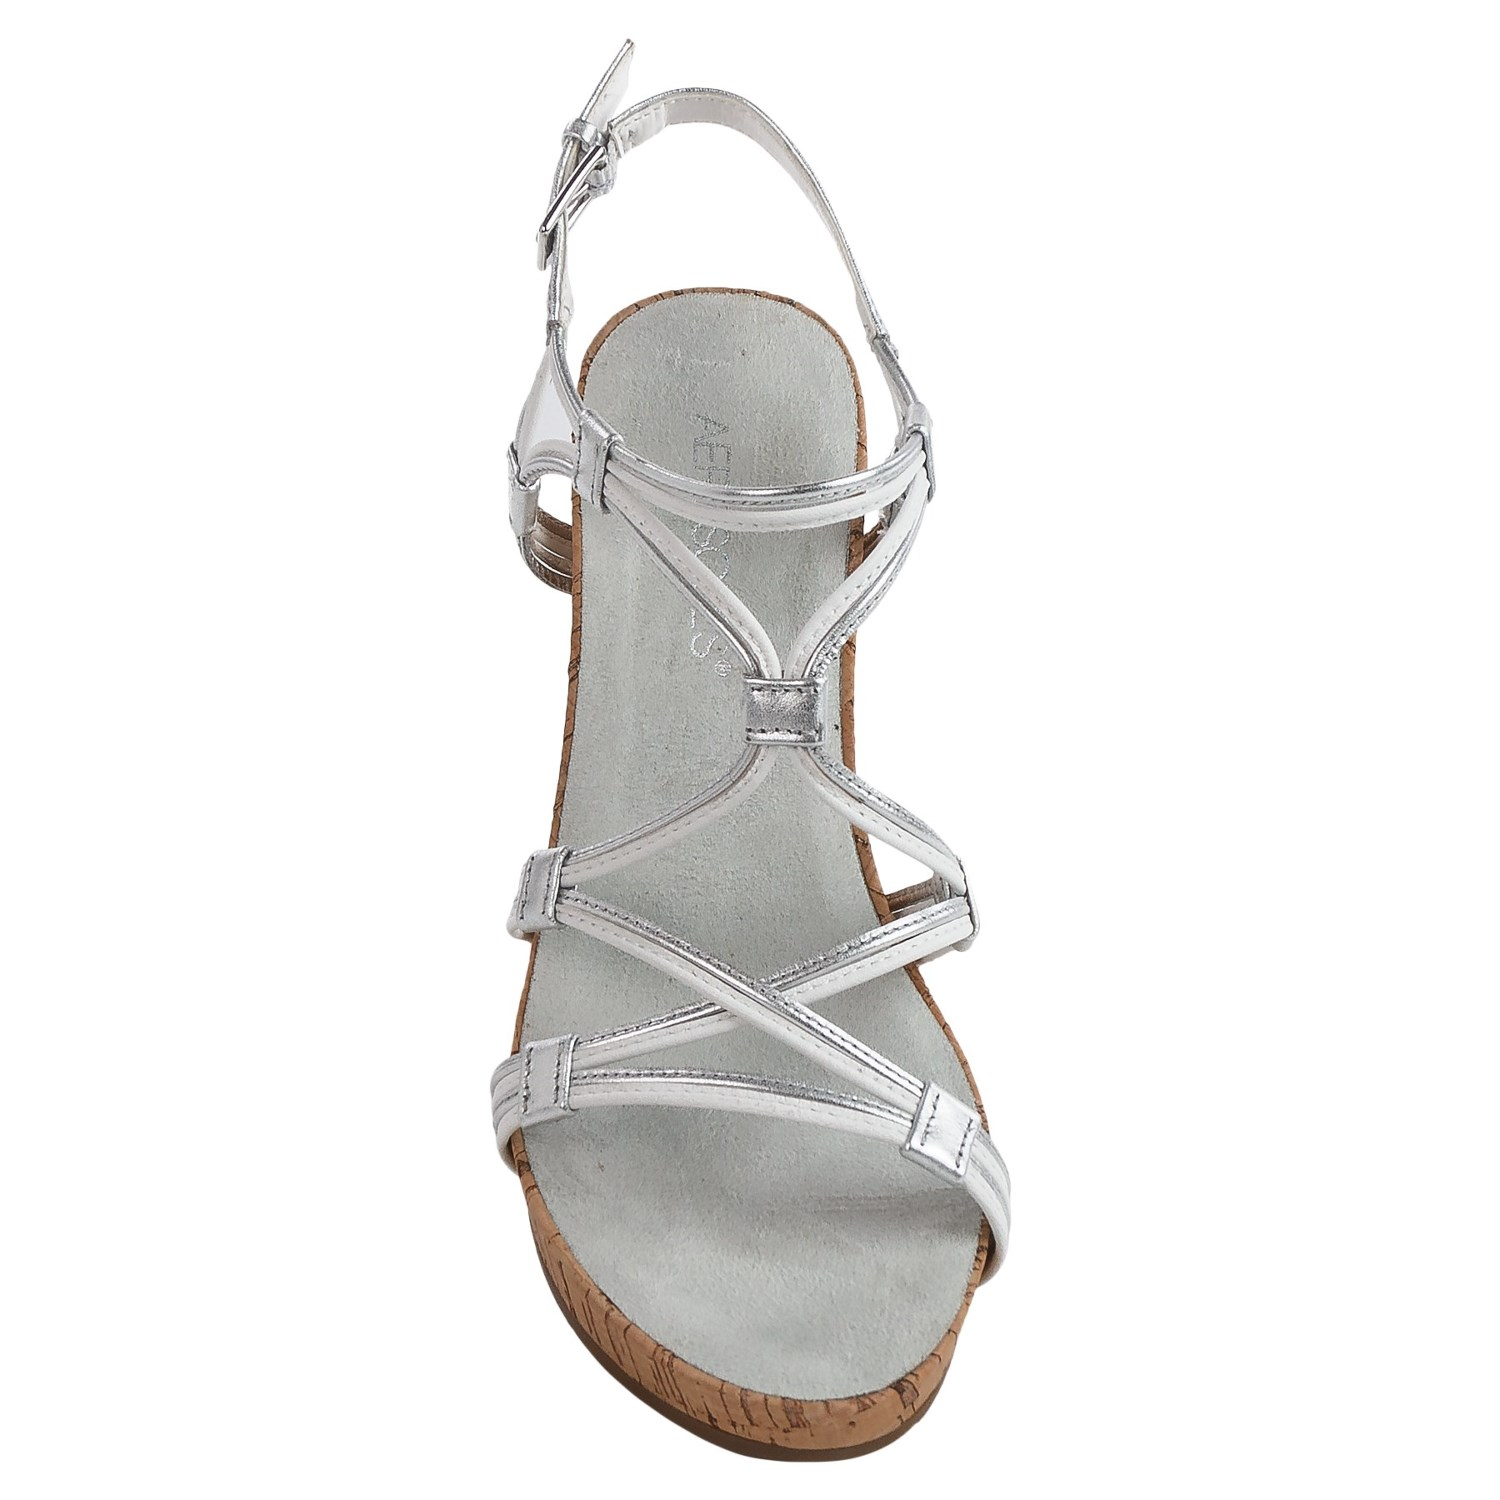 06b97a6396 Aerosoles Real Plush Wedge Sandals (For Women) - Save 50%